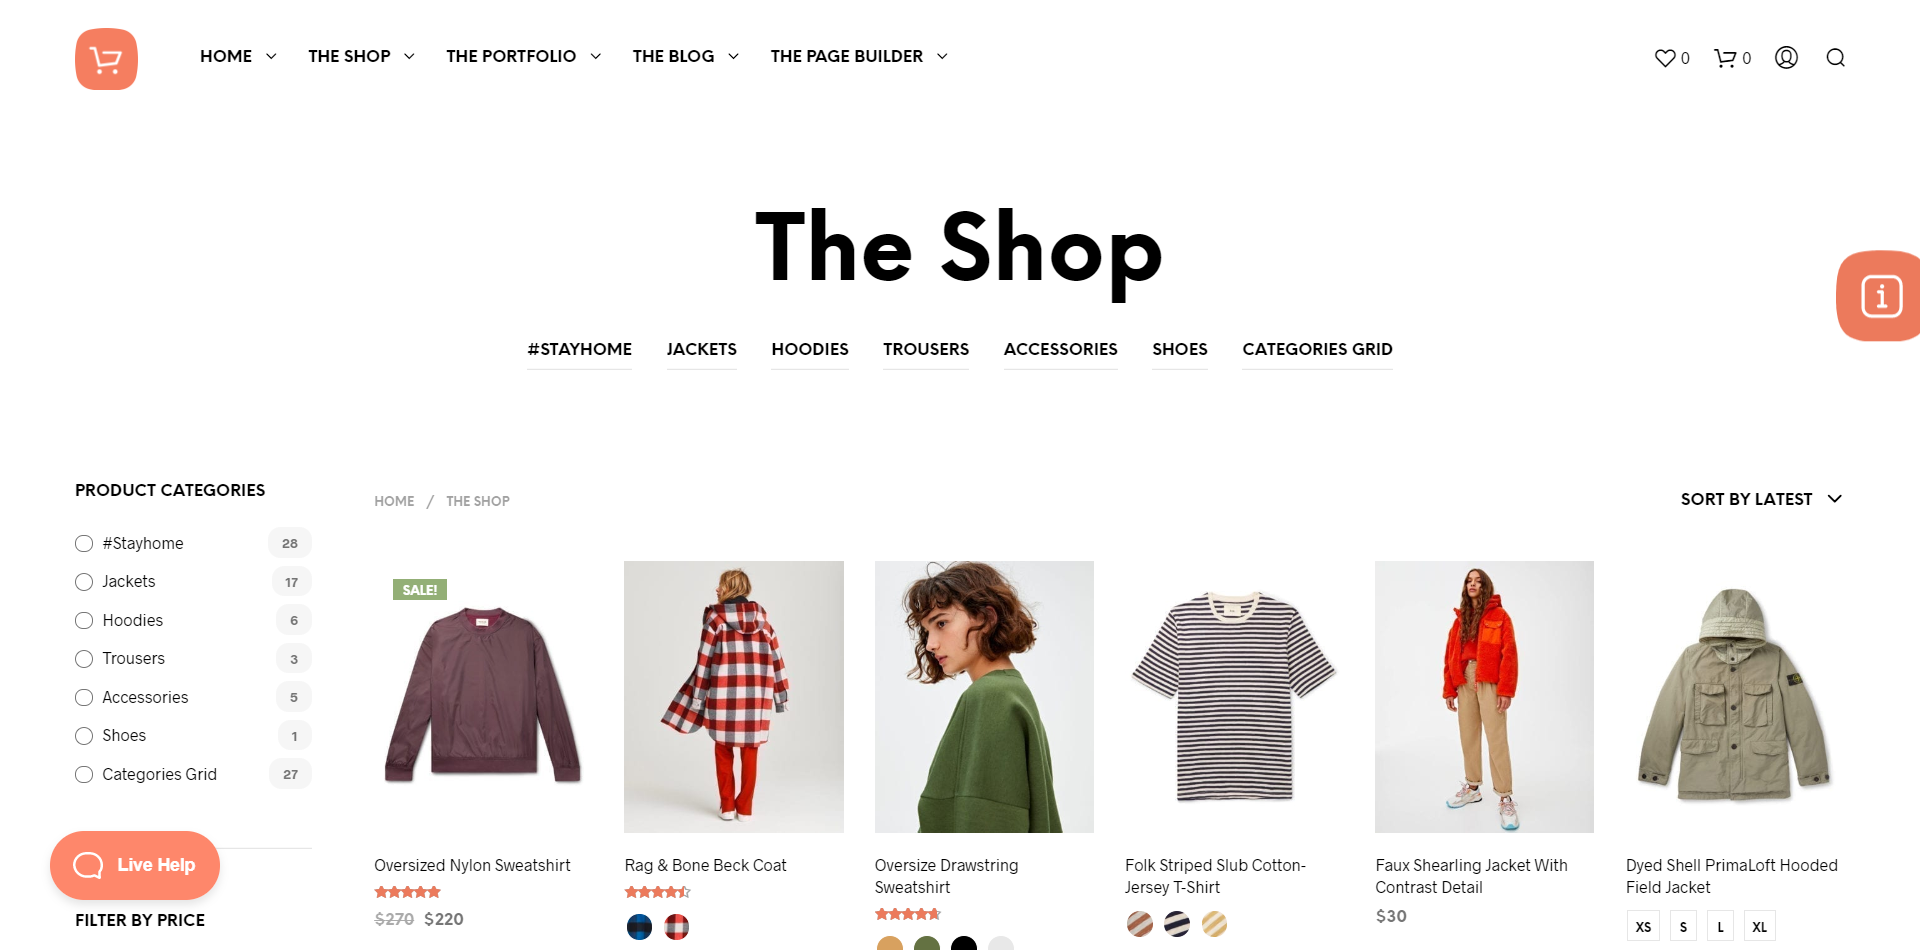 Shopkeeper WordPress theme homepage screenshot